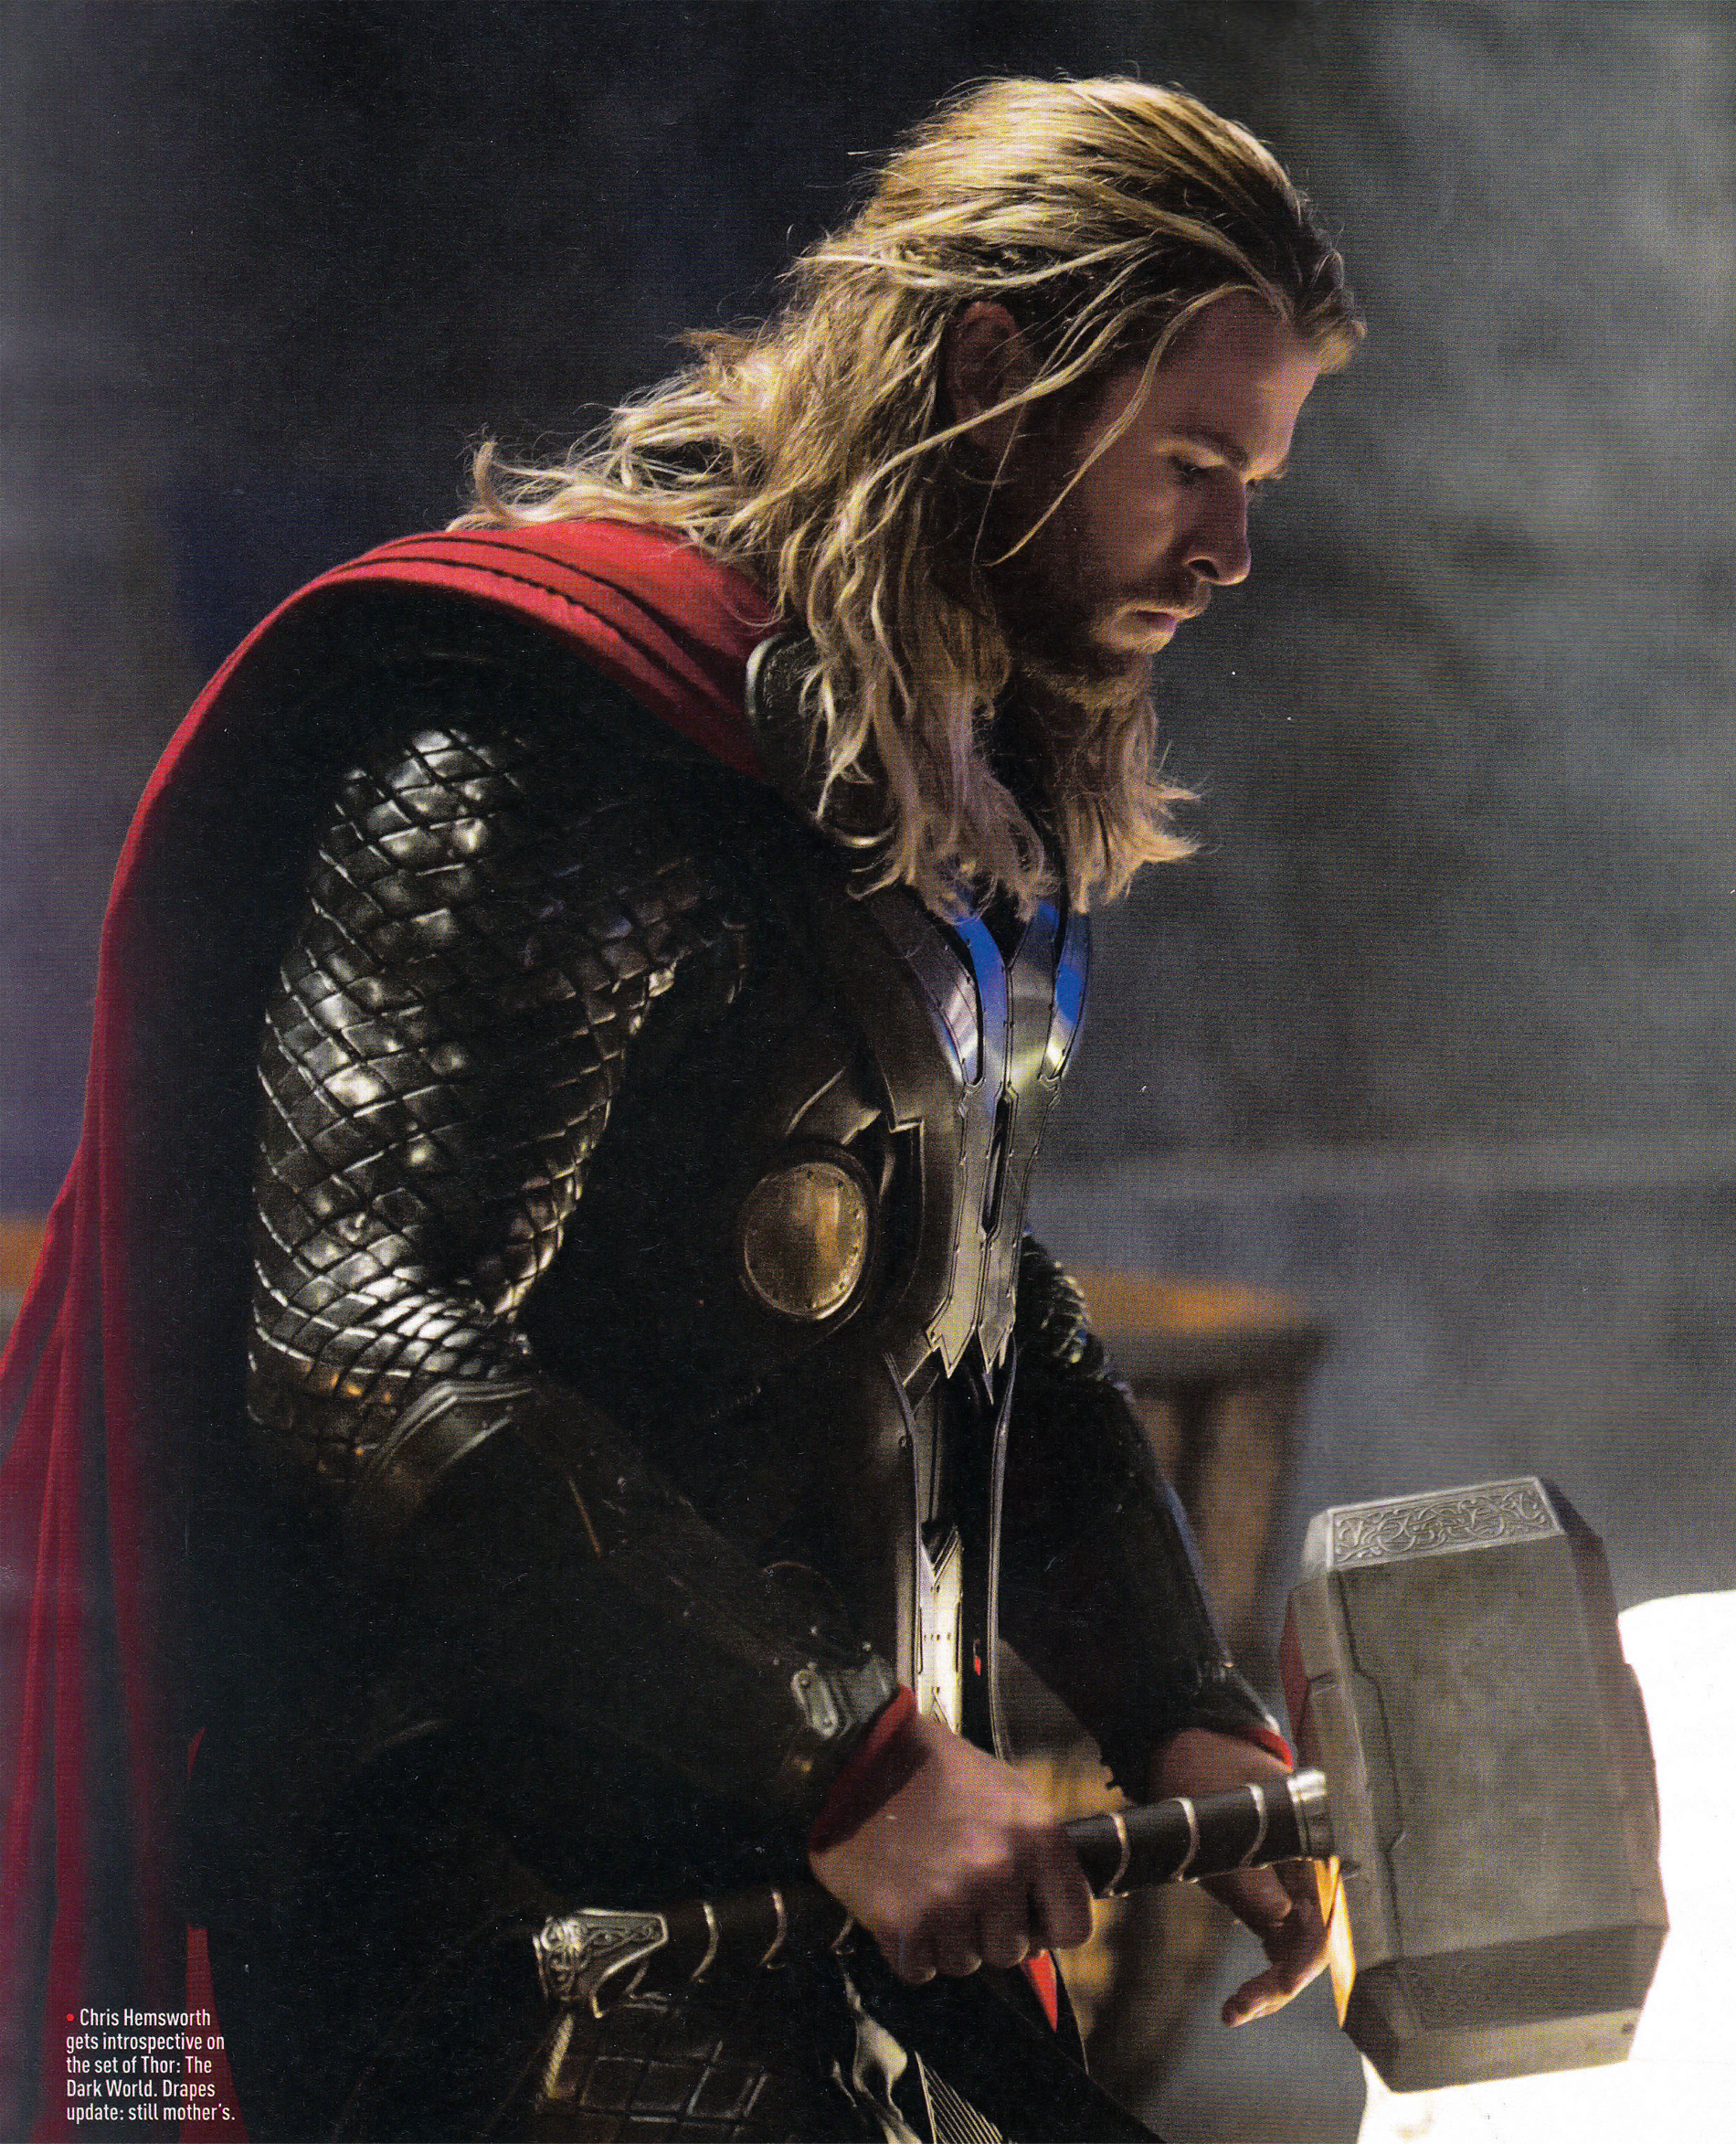 Thor the Dark World Hammer Profile More Stills from Thor: The Dark World Released